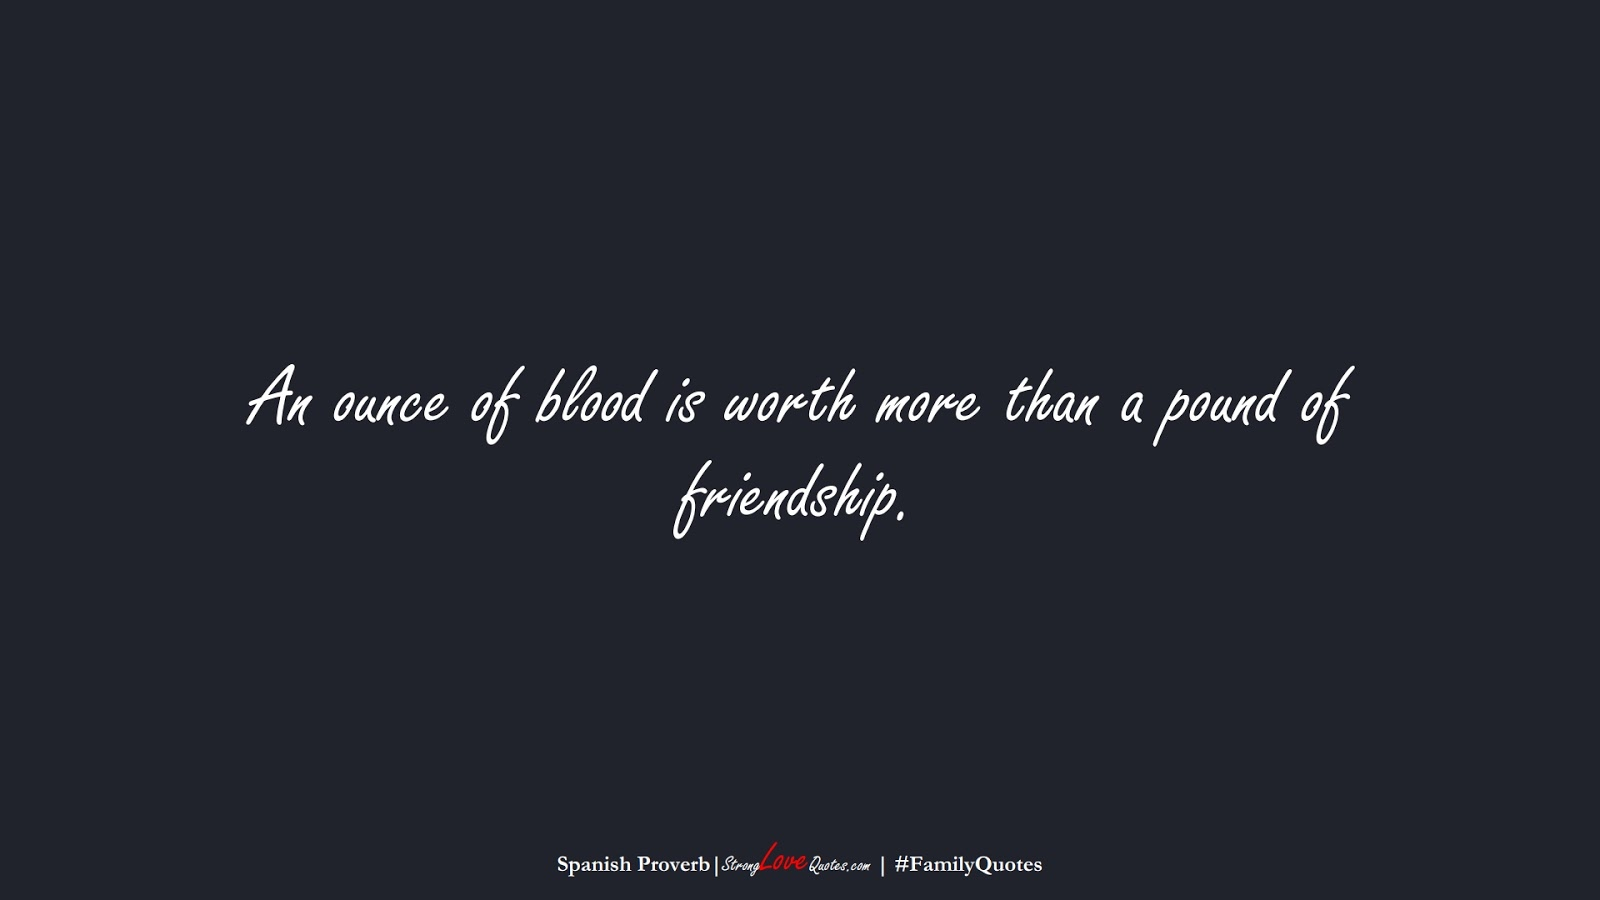 An ounce of blood is worth more than a pound of friendship. (Spanish Proverb);  #FamilyQuotes